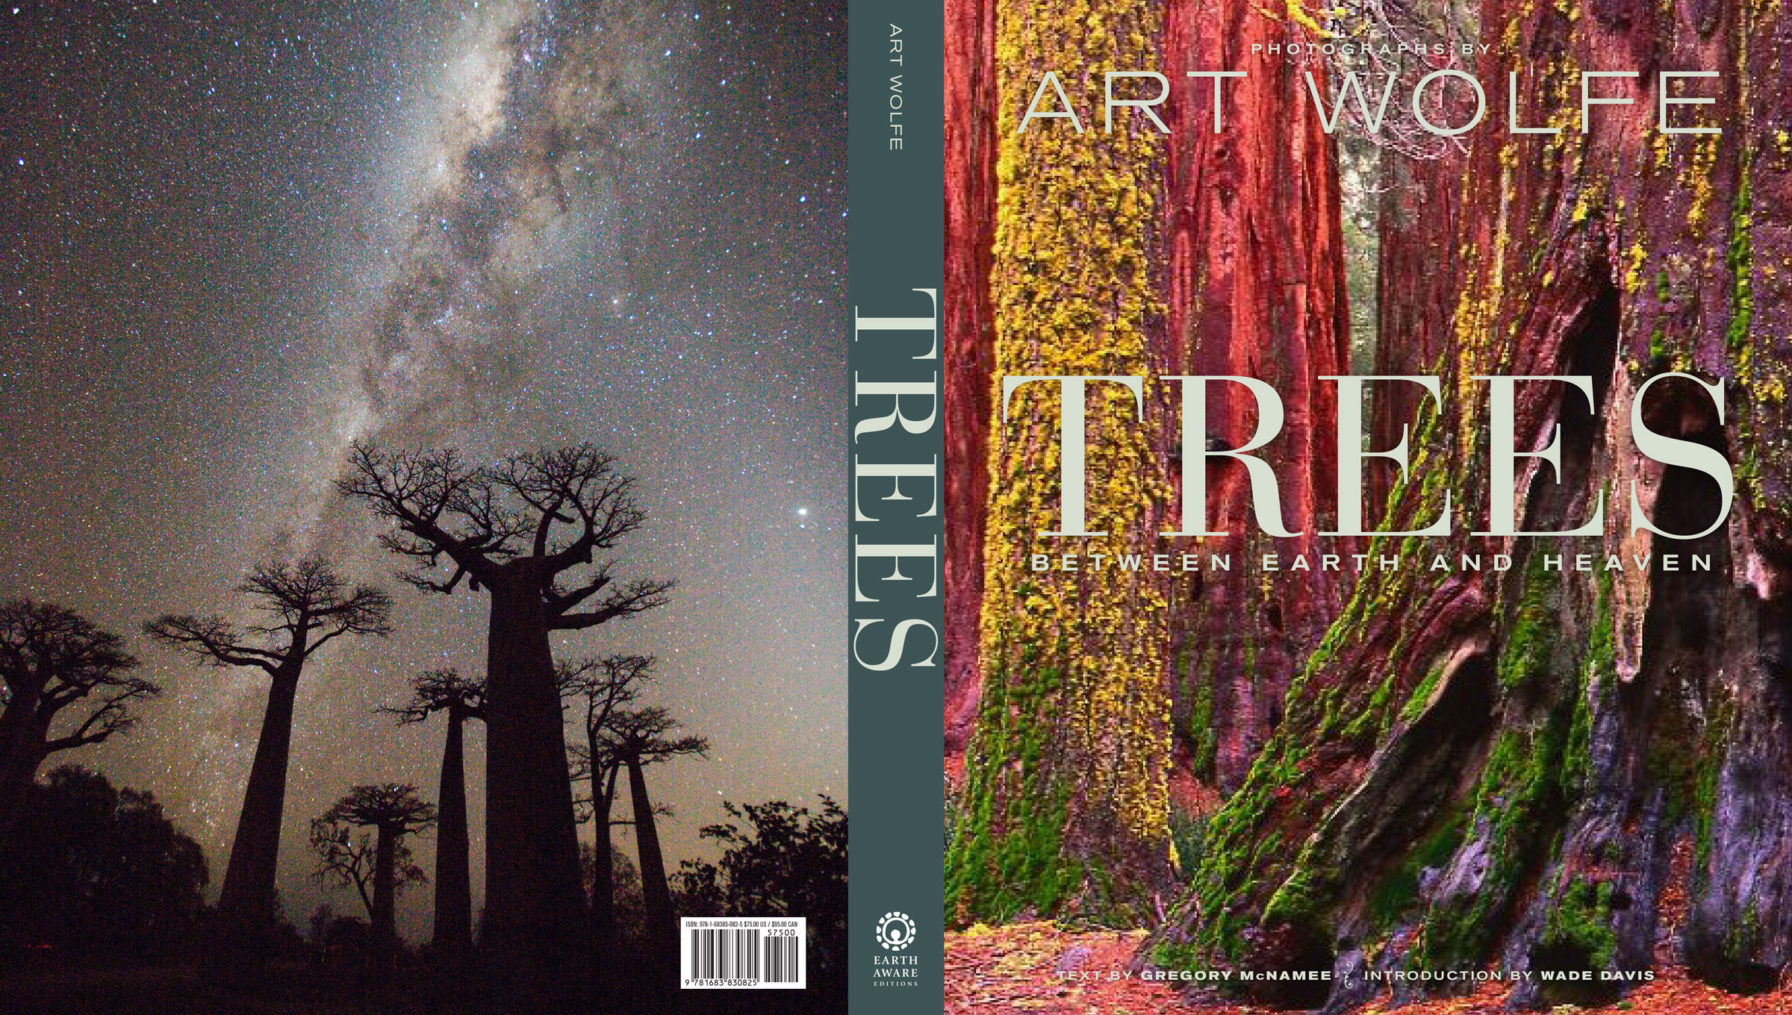 Art Wolfe Photo Tours Art Wolfe Nature Cultural Photography 1 888 973 0011